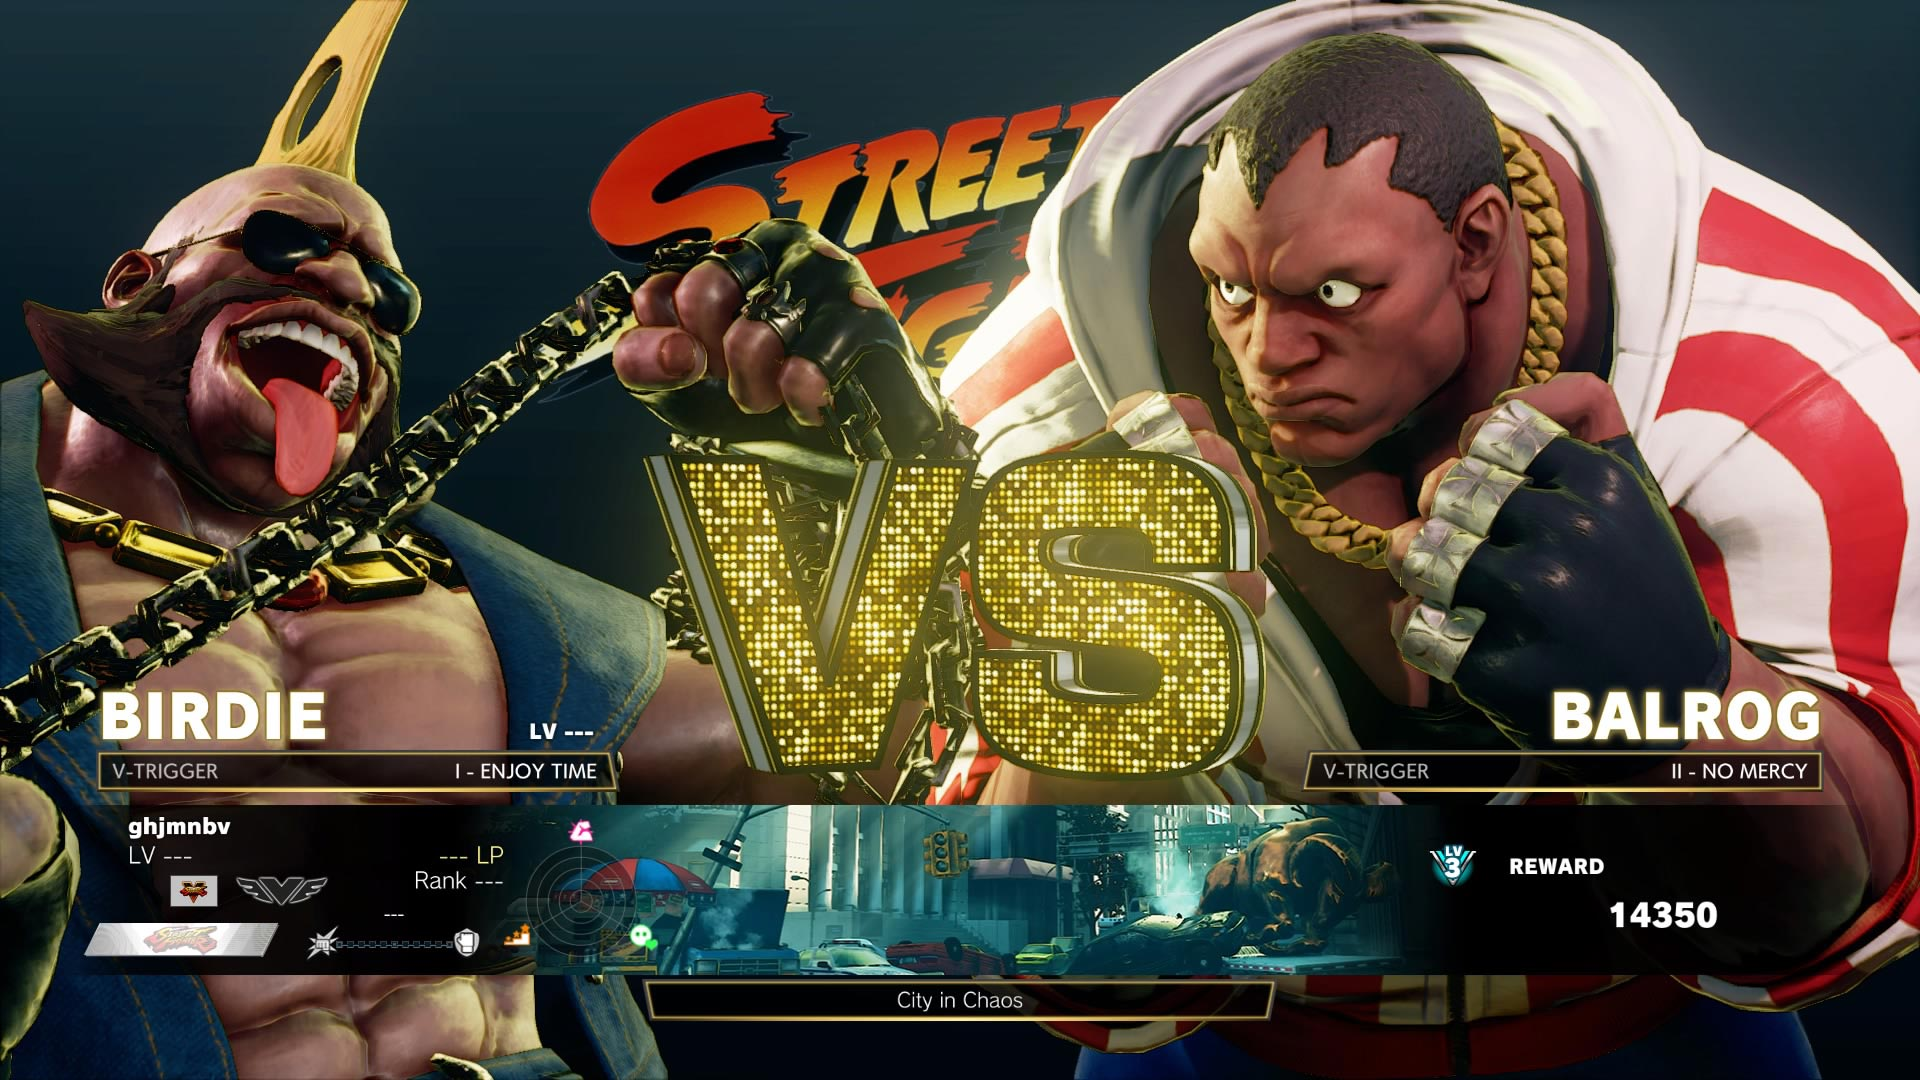 Street Fighter 5: Arcade Edition launch images 1 out of 15 image gallery